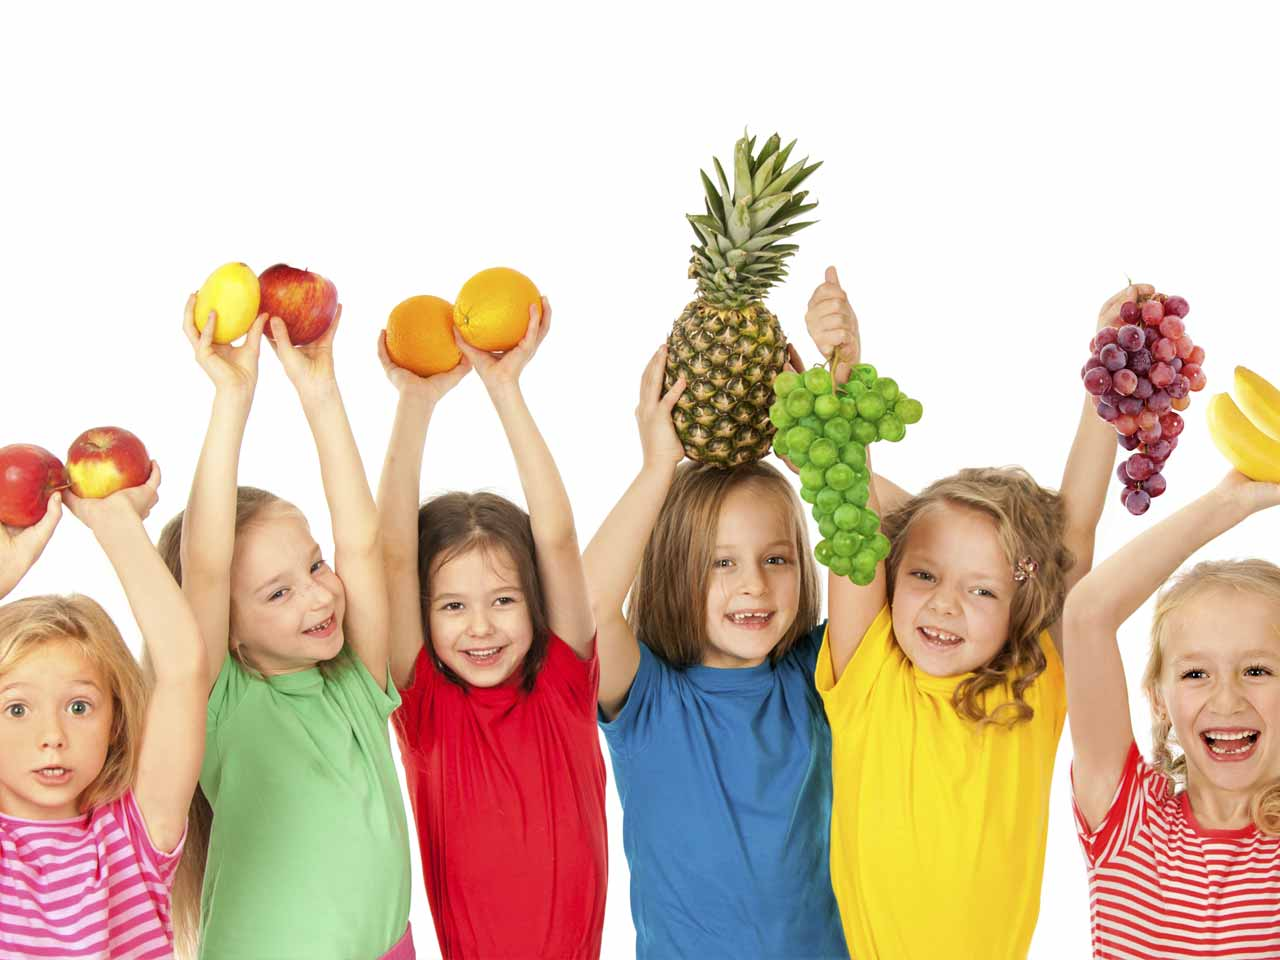 Tips on how to get children eating more healthily